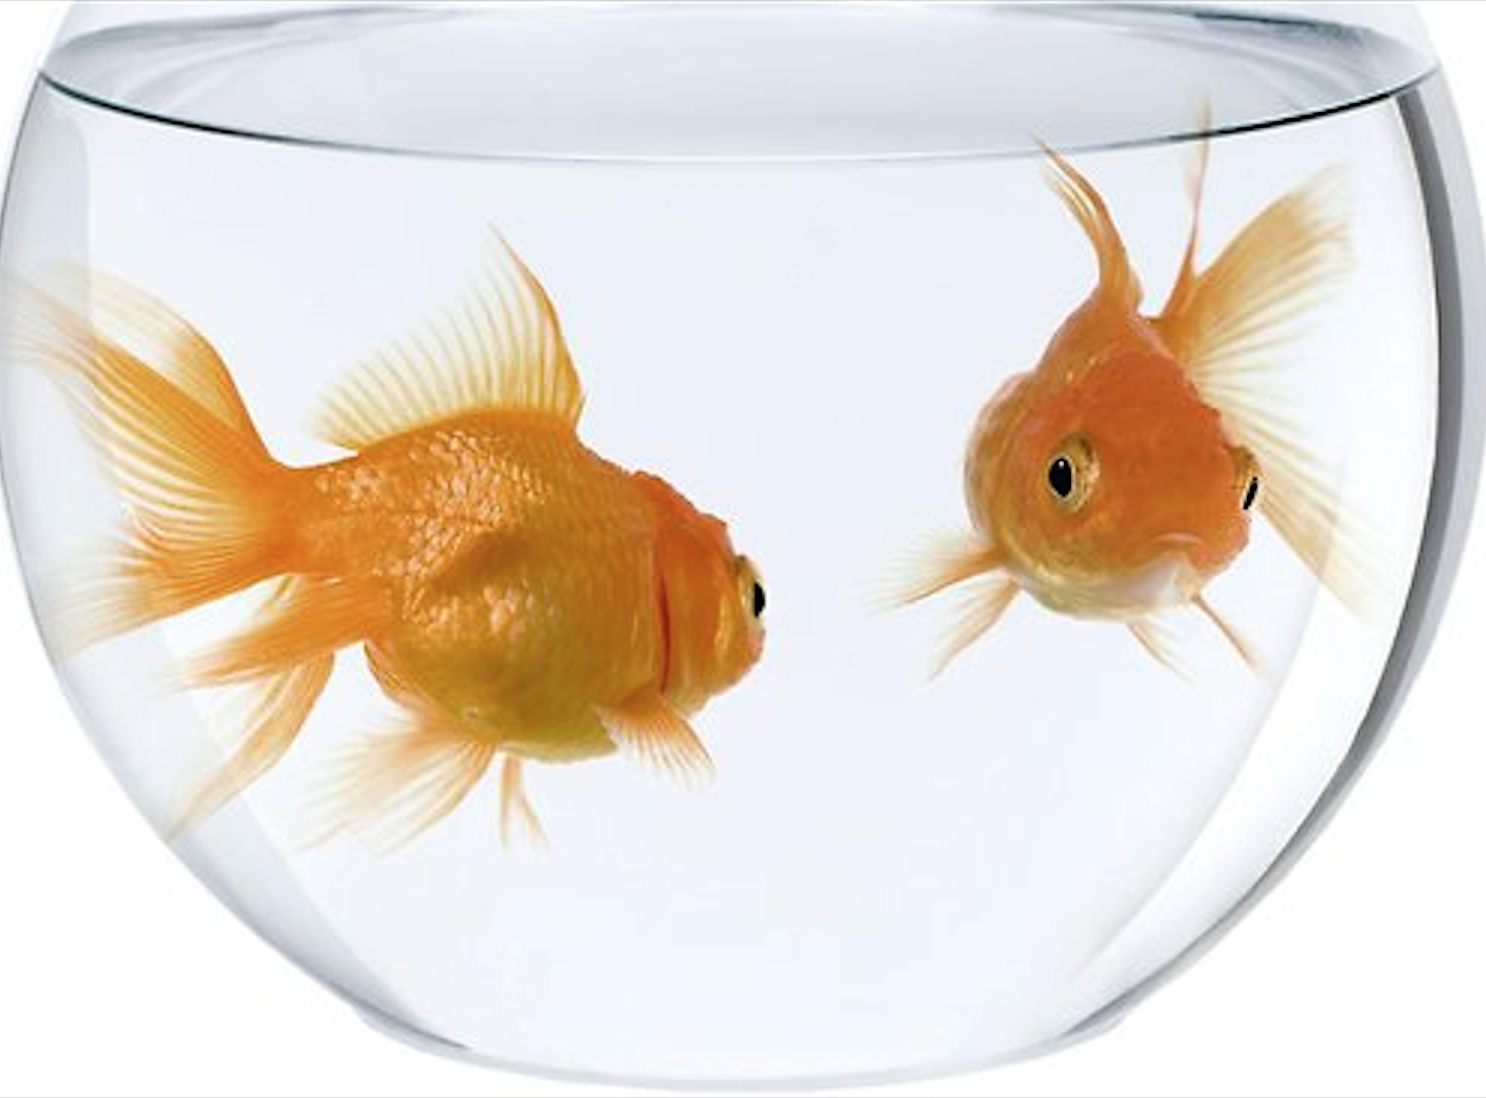 sex in a fish bowl rules